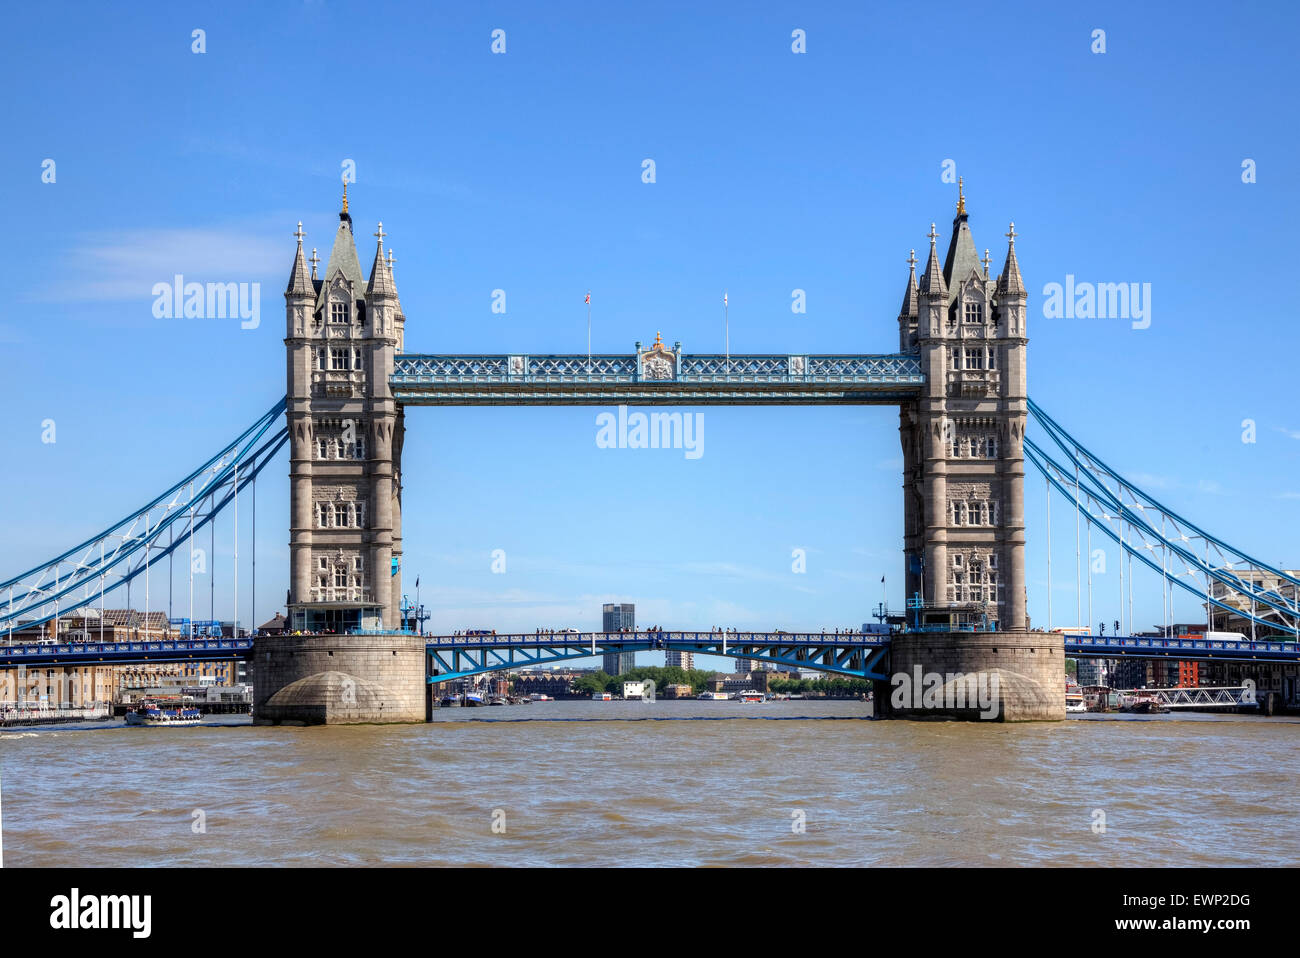 Tower Bridge, London, England, United Kingdom Stock Photo